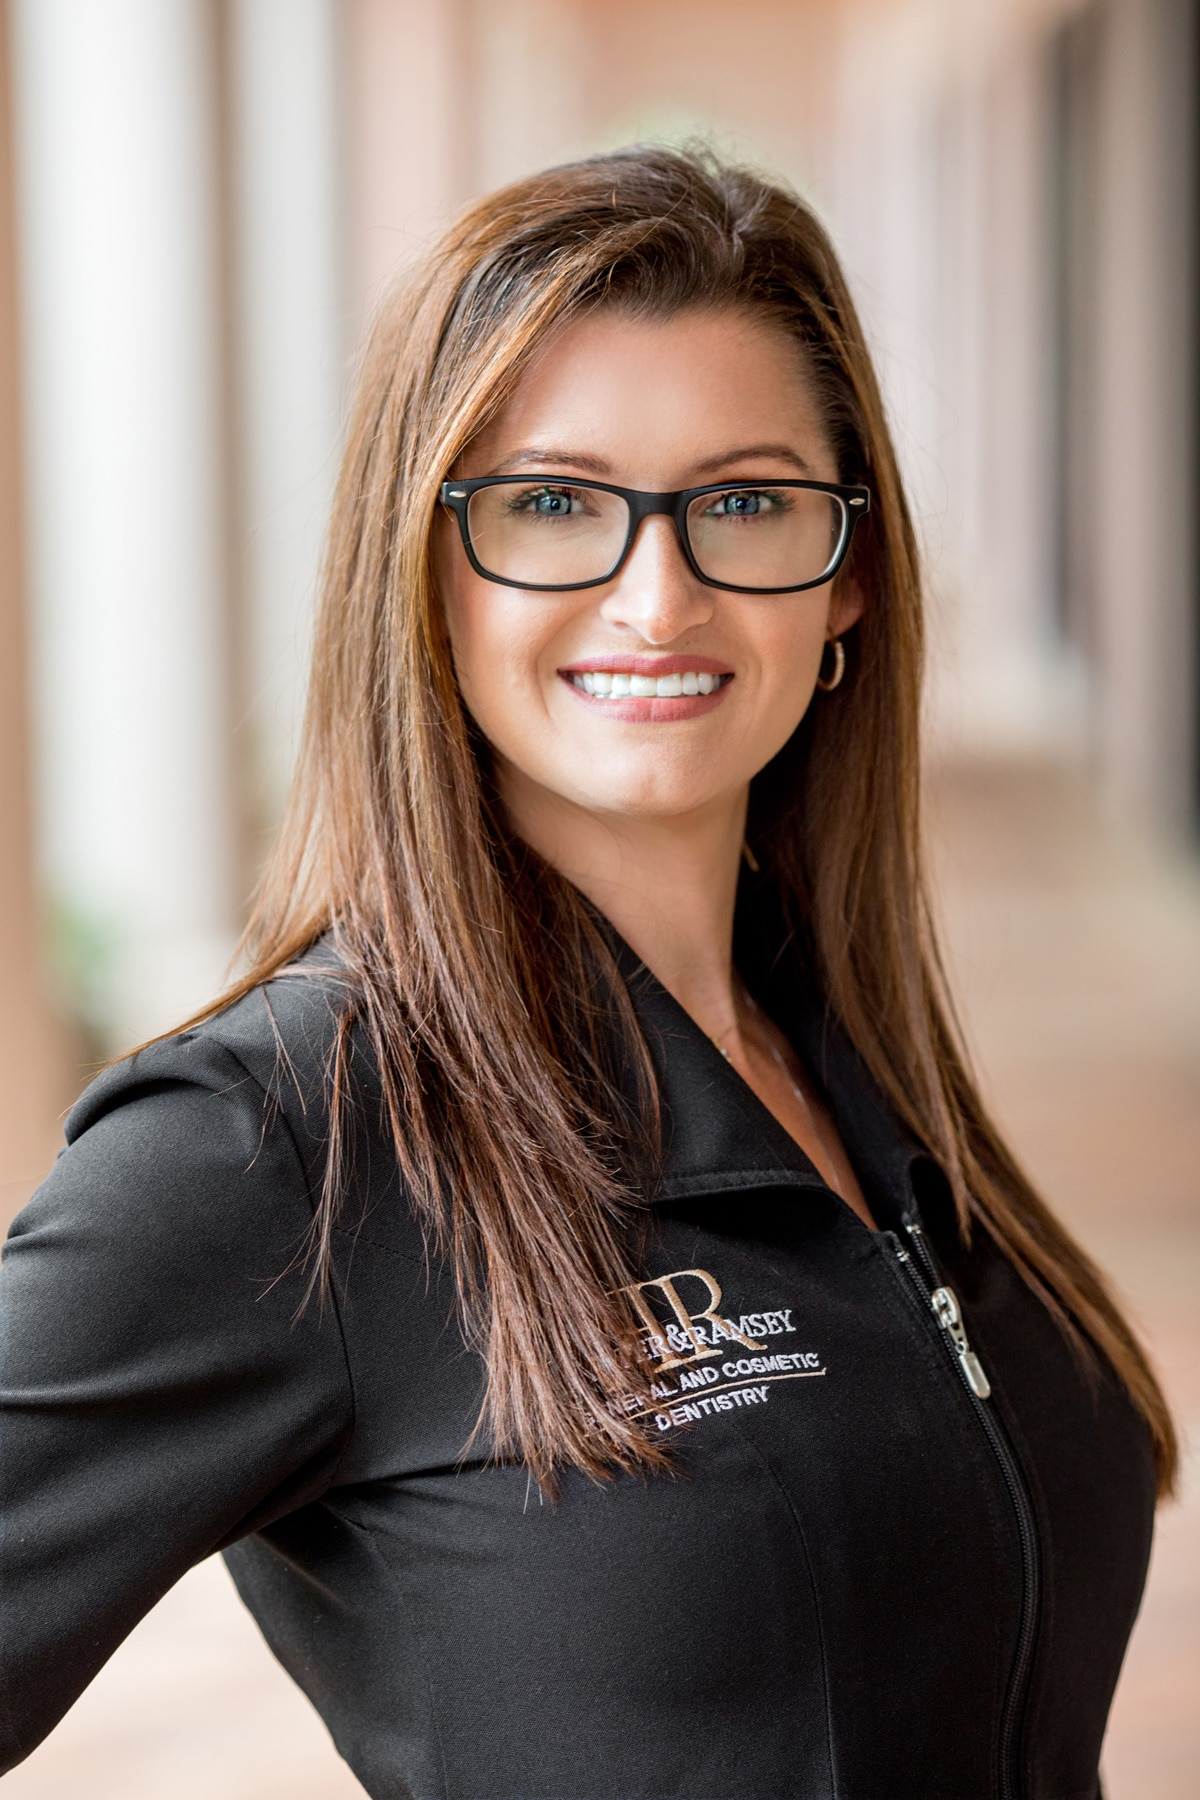 Meet Falan at Ritter & Ramsey General And Cosmetic Dentistry in Jupiter, FL.